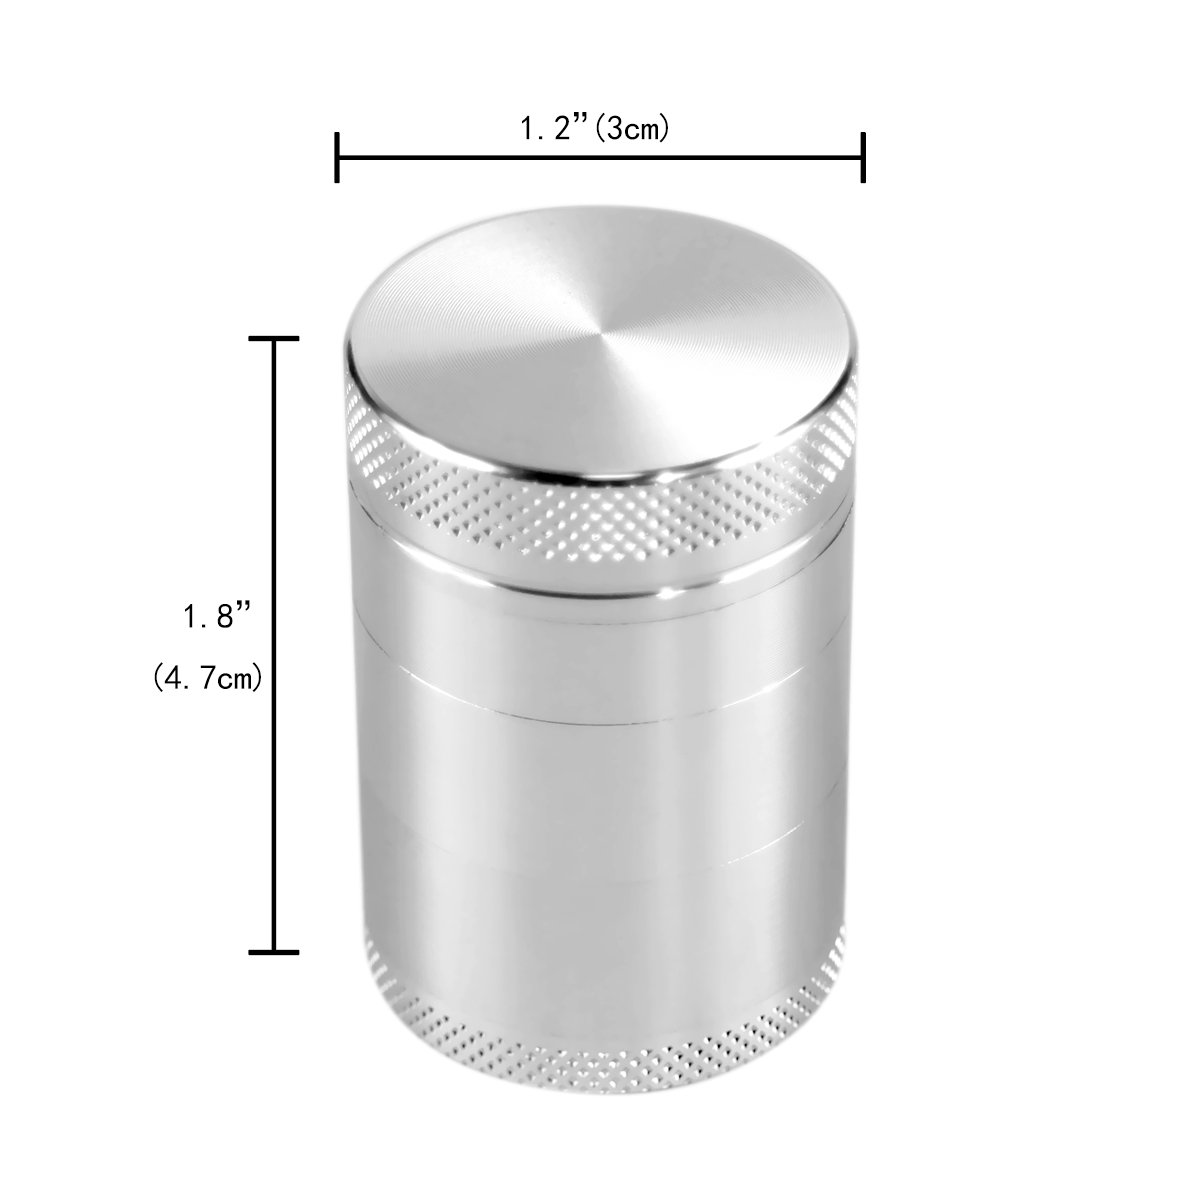 Formax420 Herb Grinder 1.8'' X 1.2'' Inch 5 Pieces Double Filters with Pollen Catcher